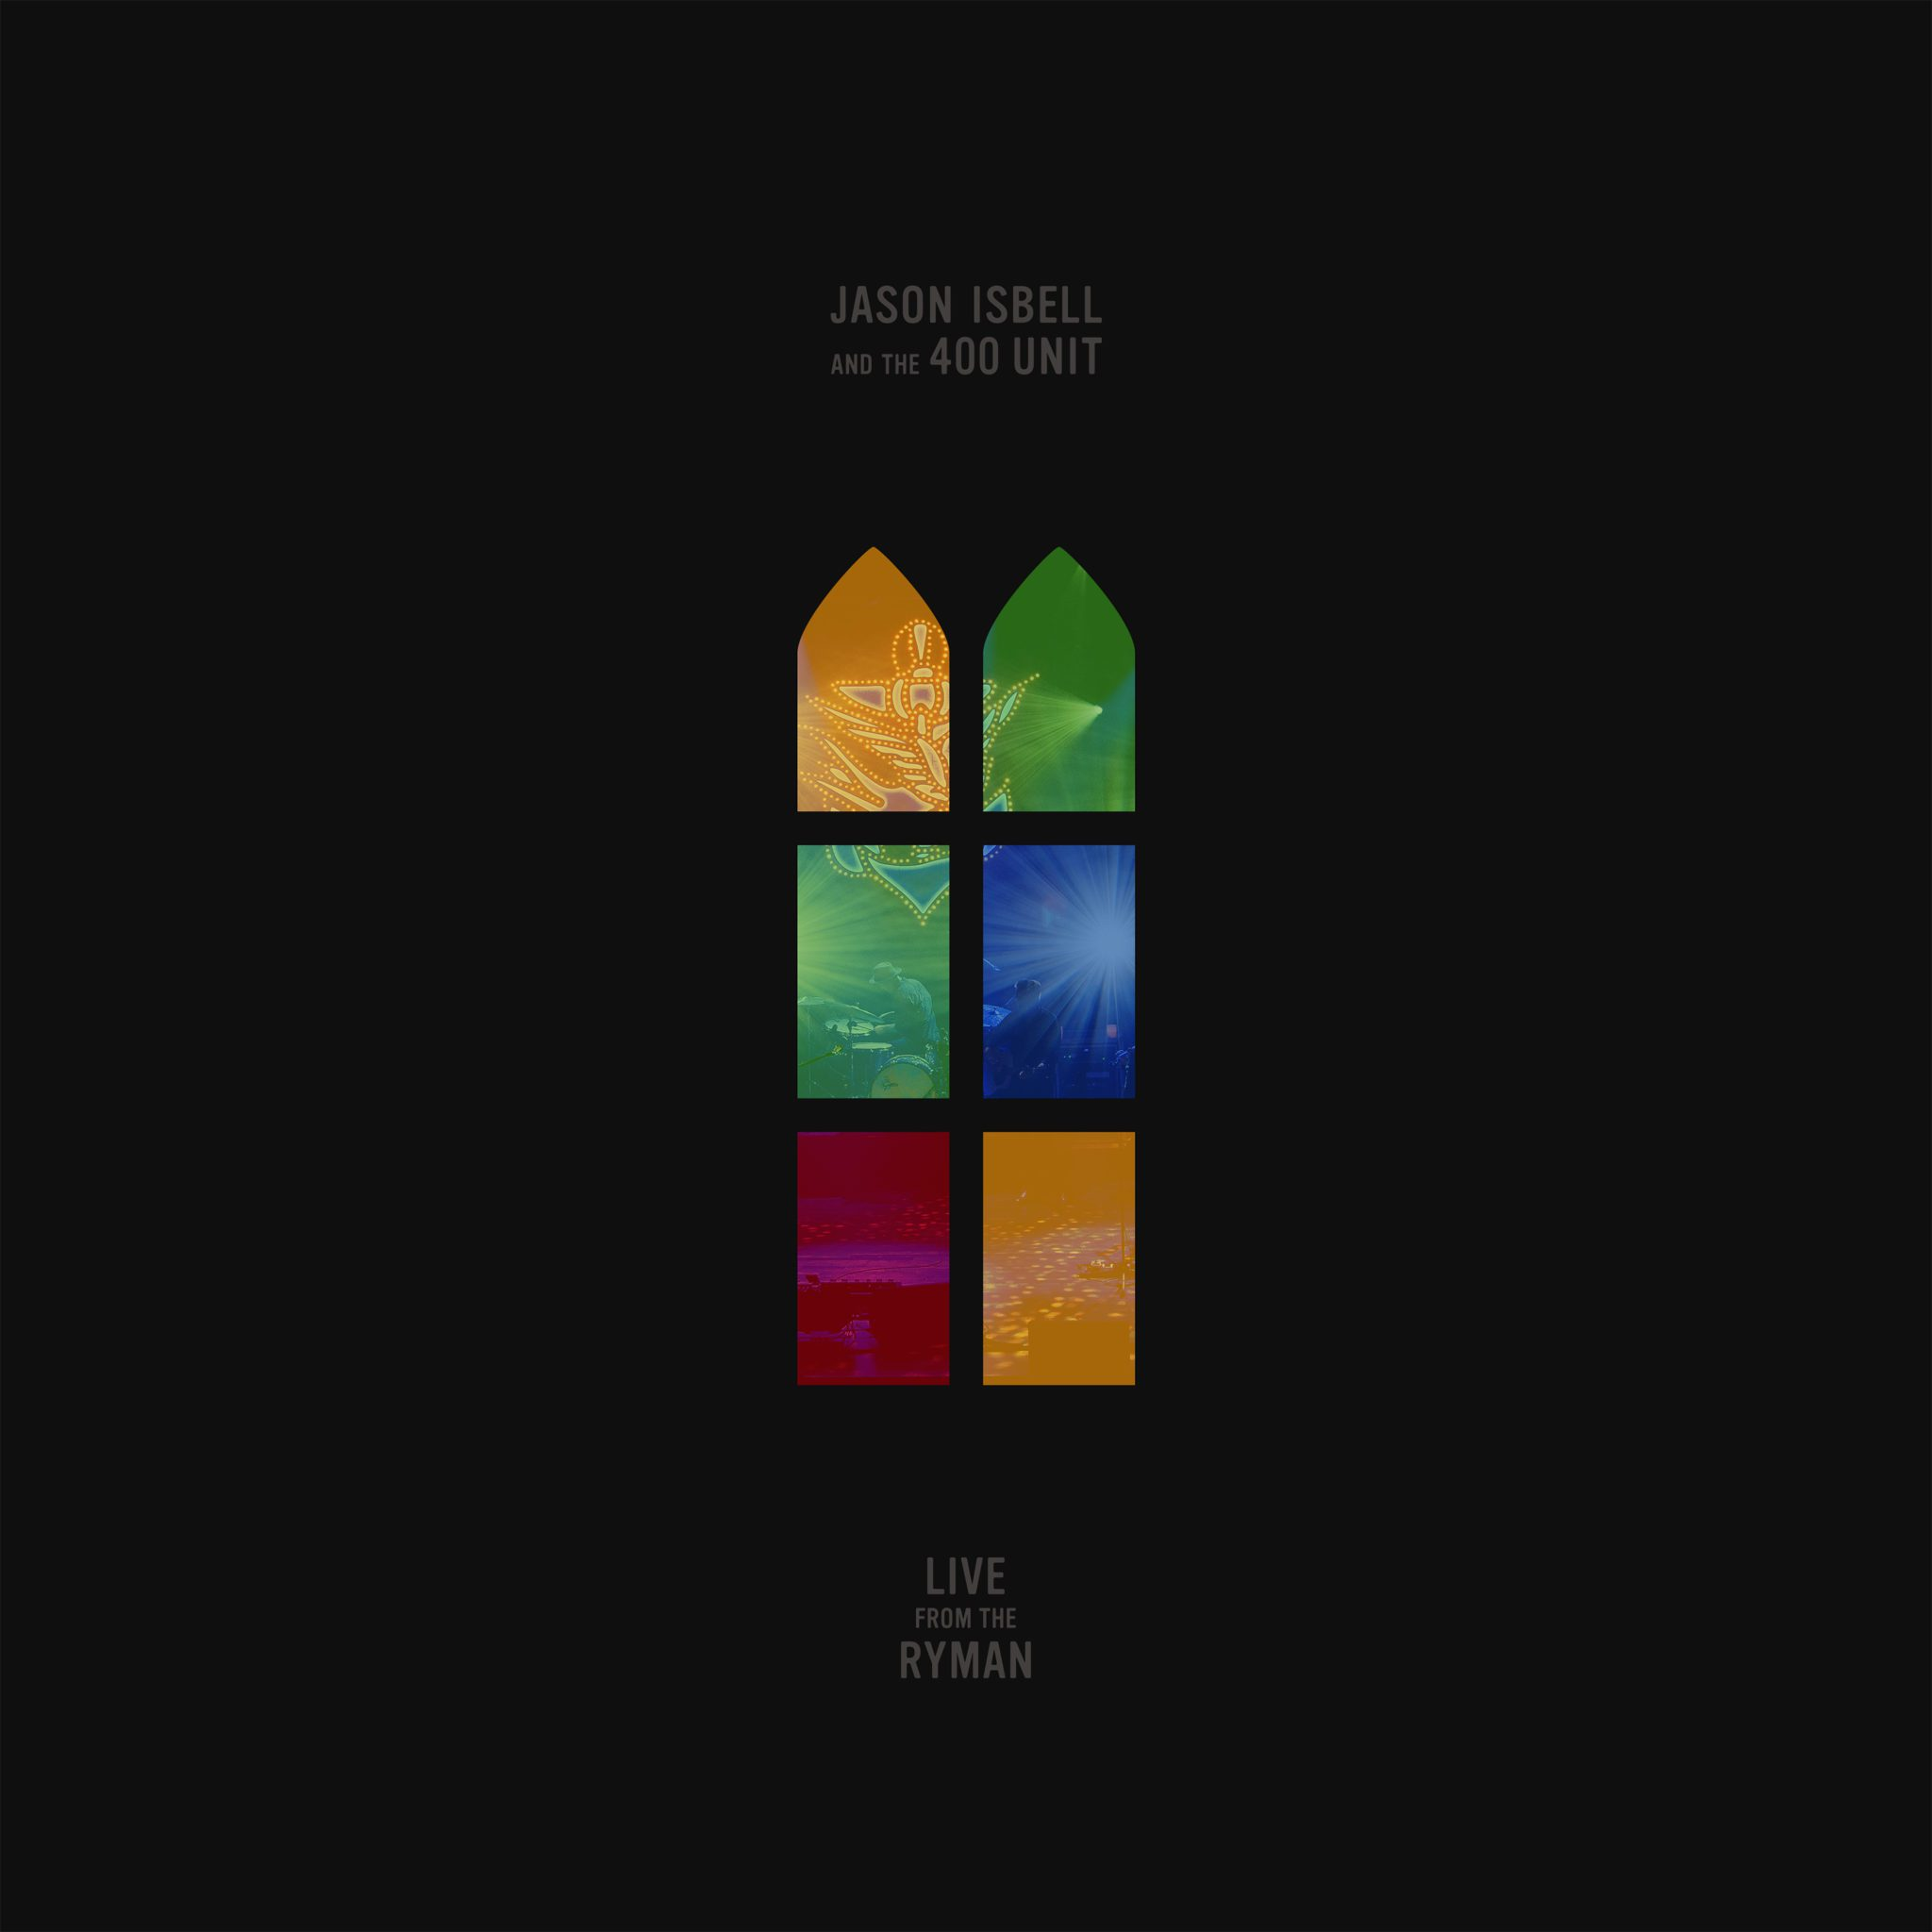 jason-isbell-live-from